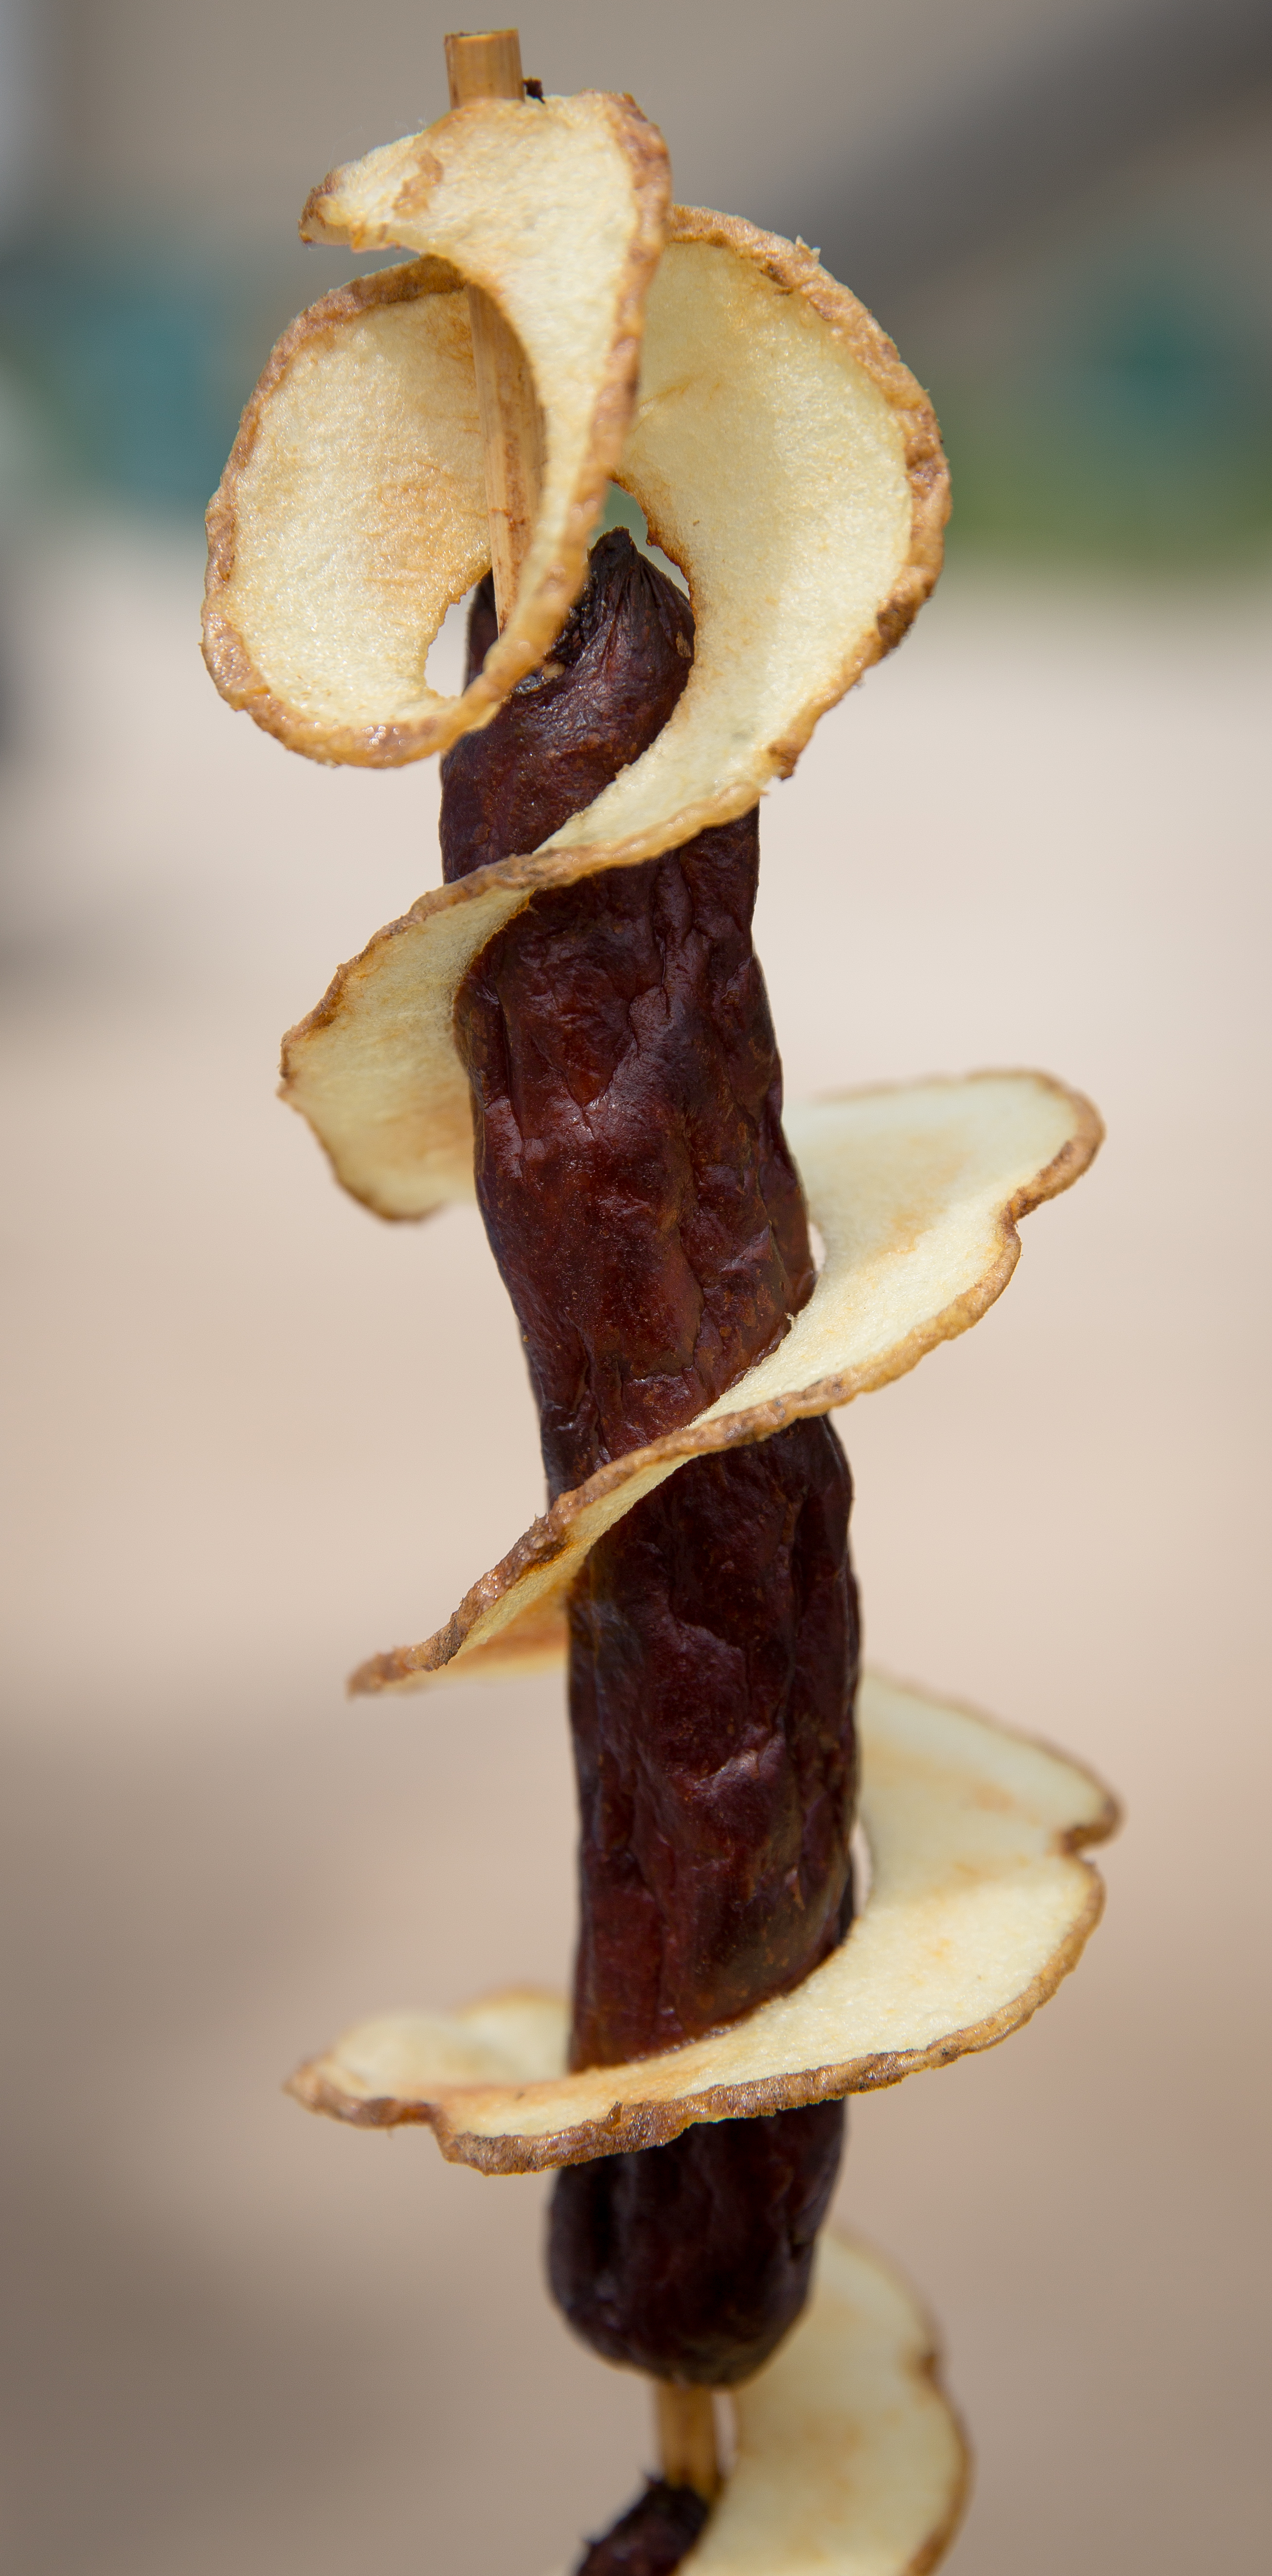 Chip dog from Chipstix stand. A fried potato wrapped around two deep friend hotdogs. Red River Ex food reviews - Jen Zoratti story 140613 - Friday, June 13, 2014 - (Melissa Tait / Winnipeg Free Press)